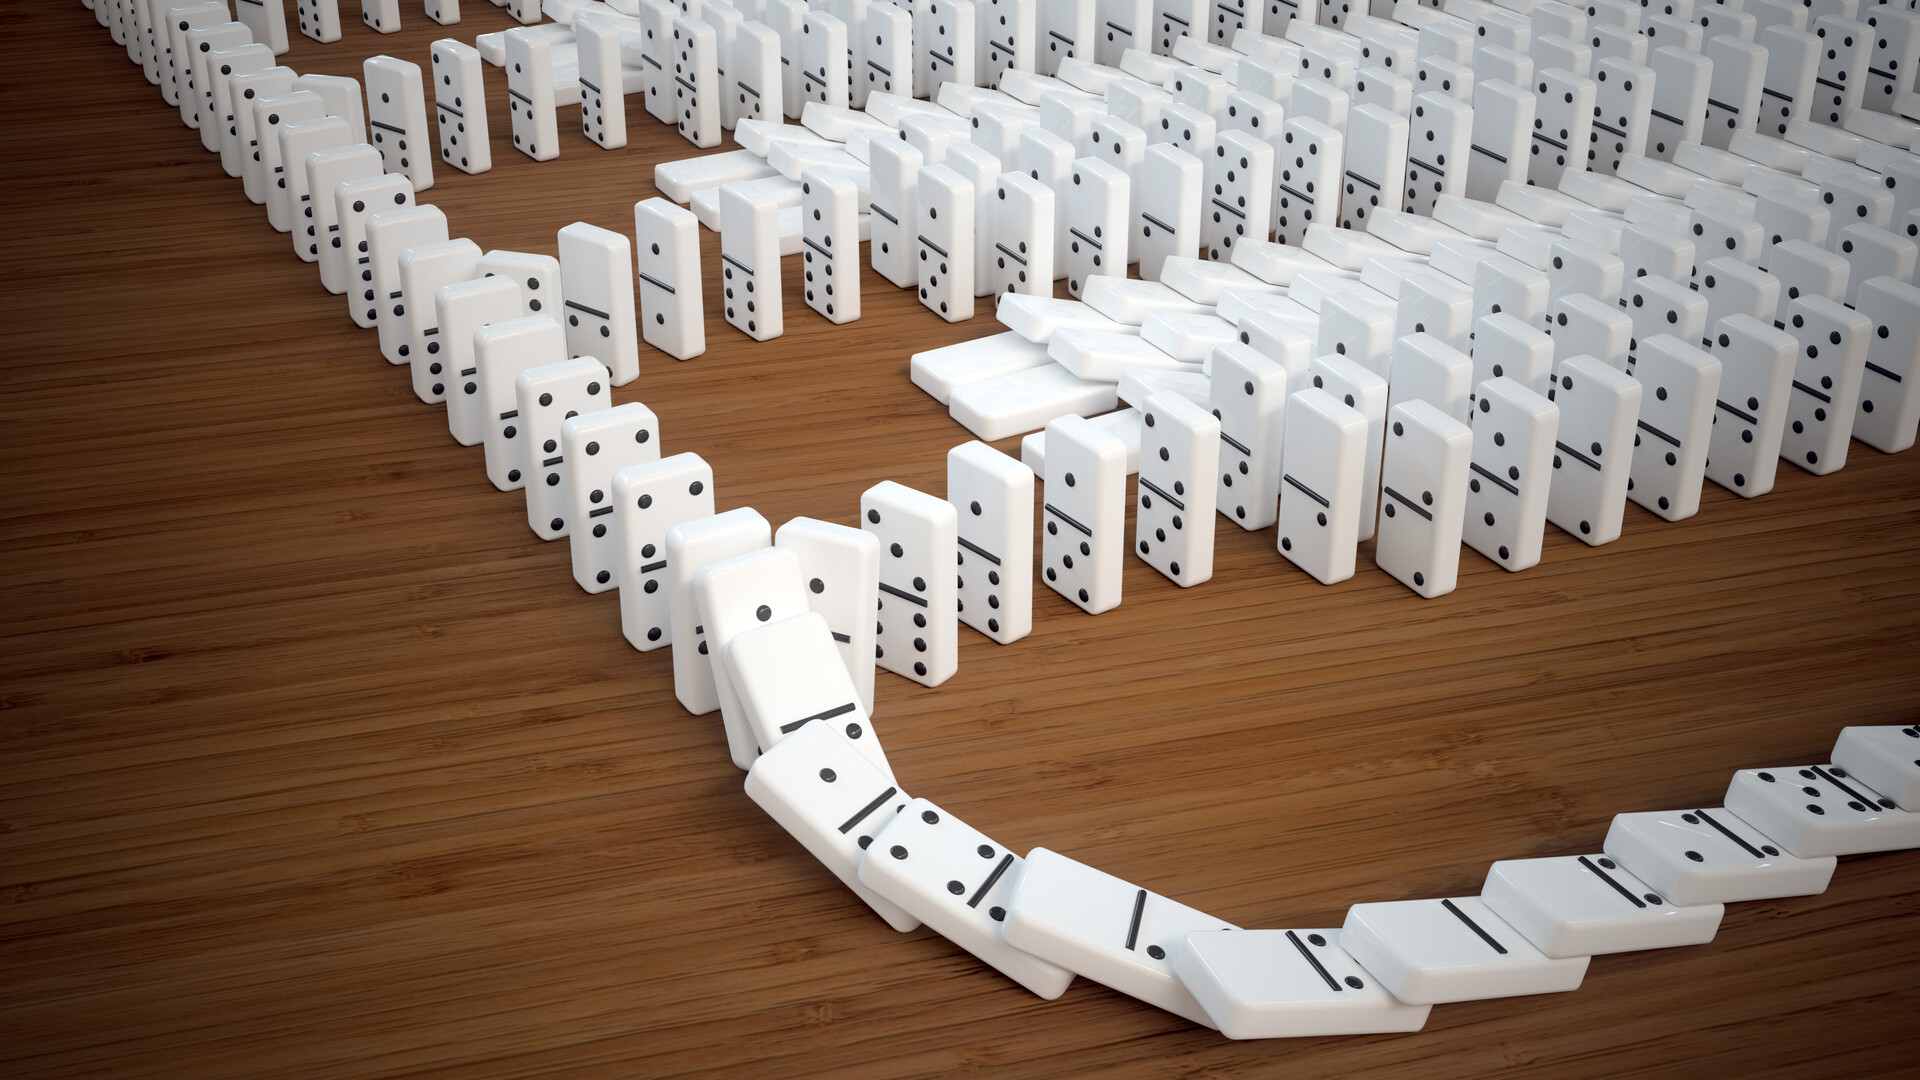 Ed schiffer dominoes 18